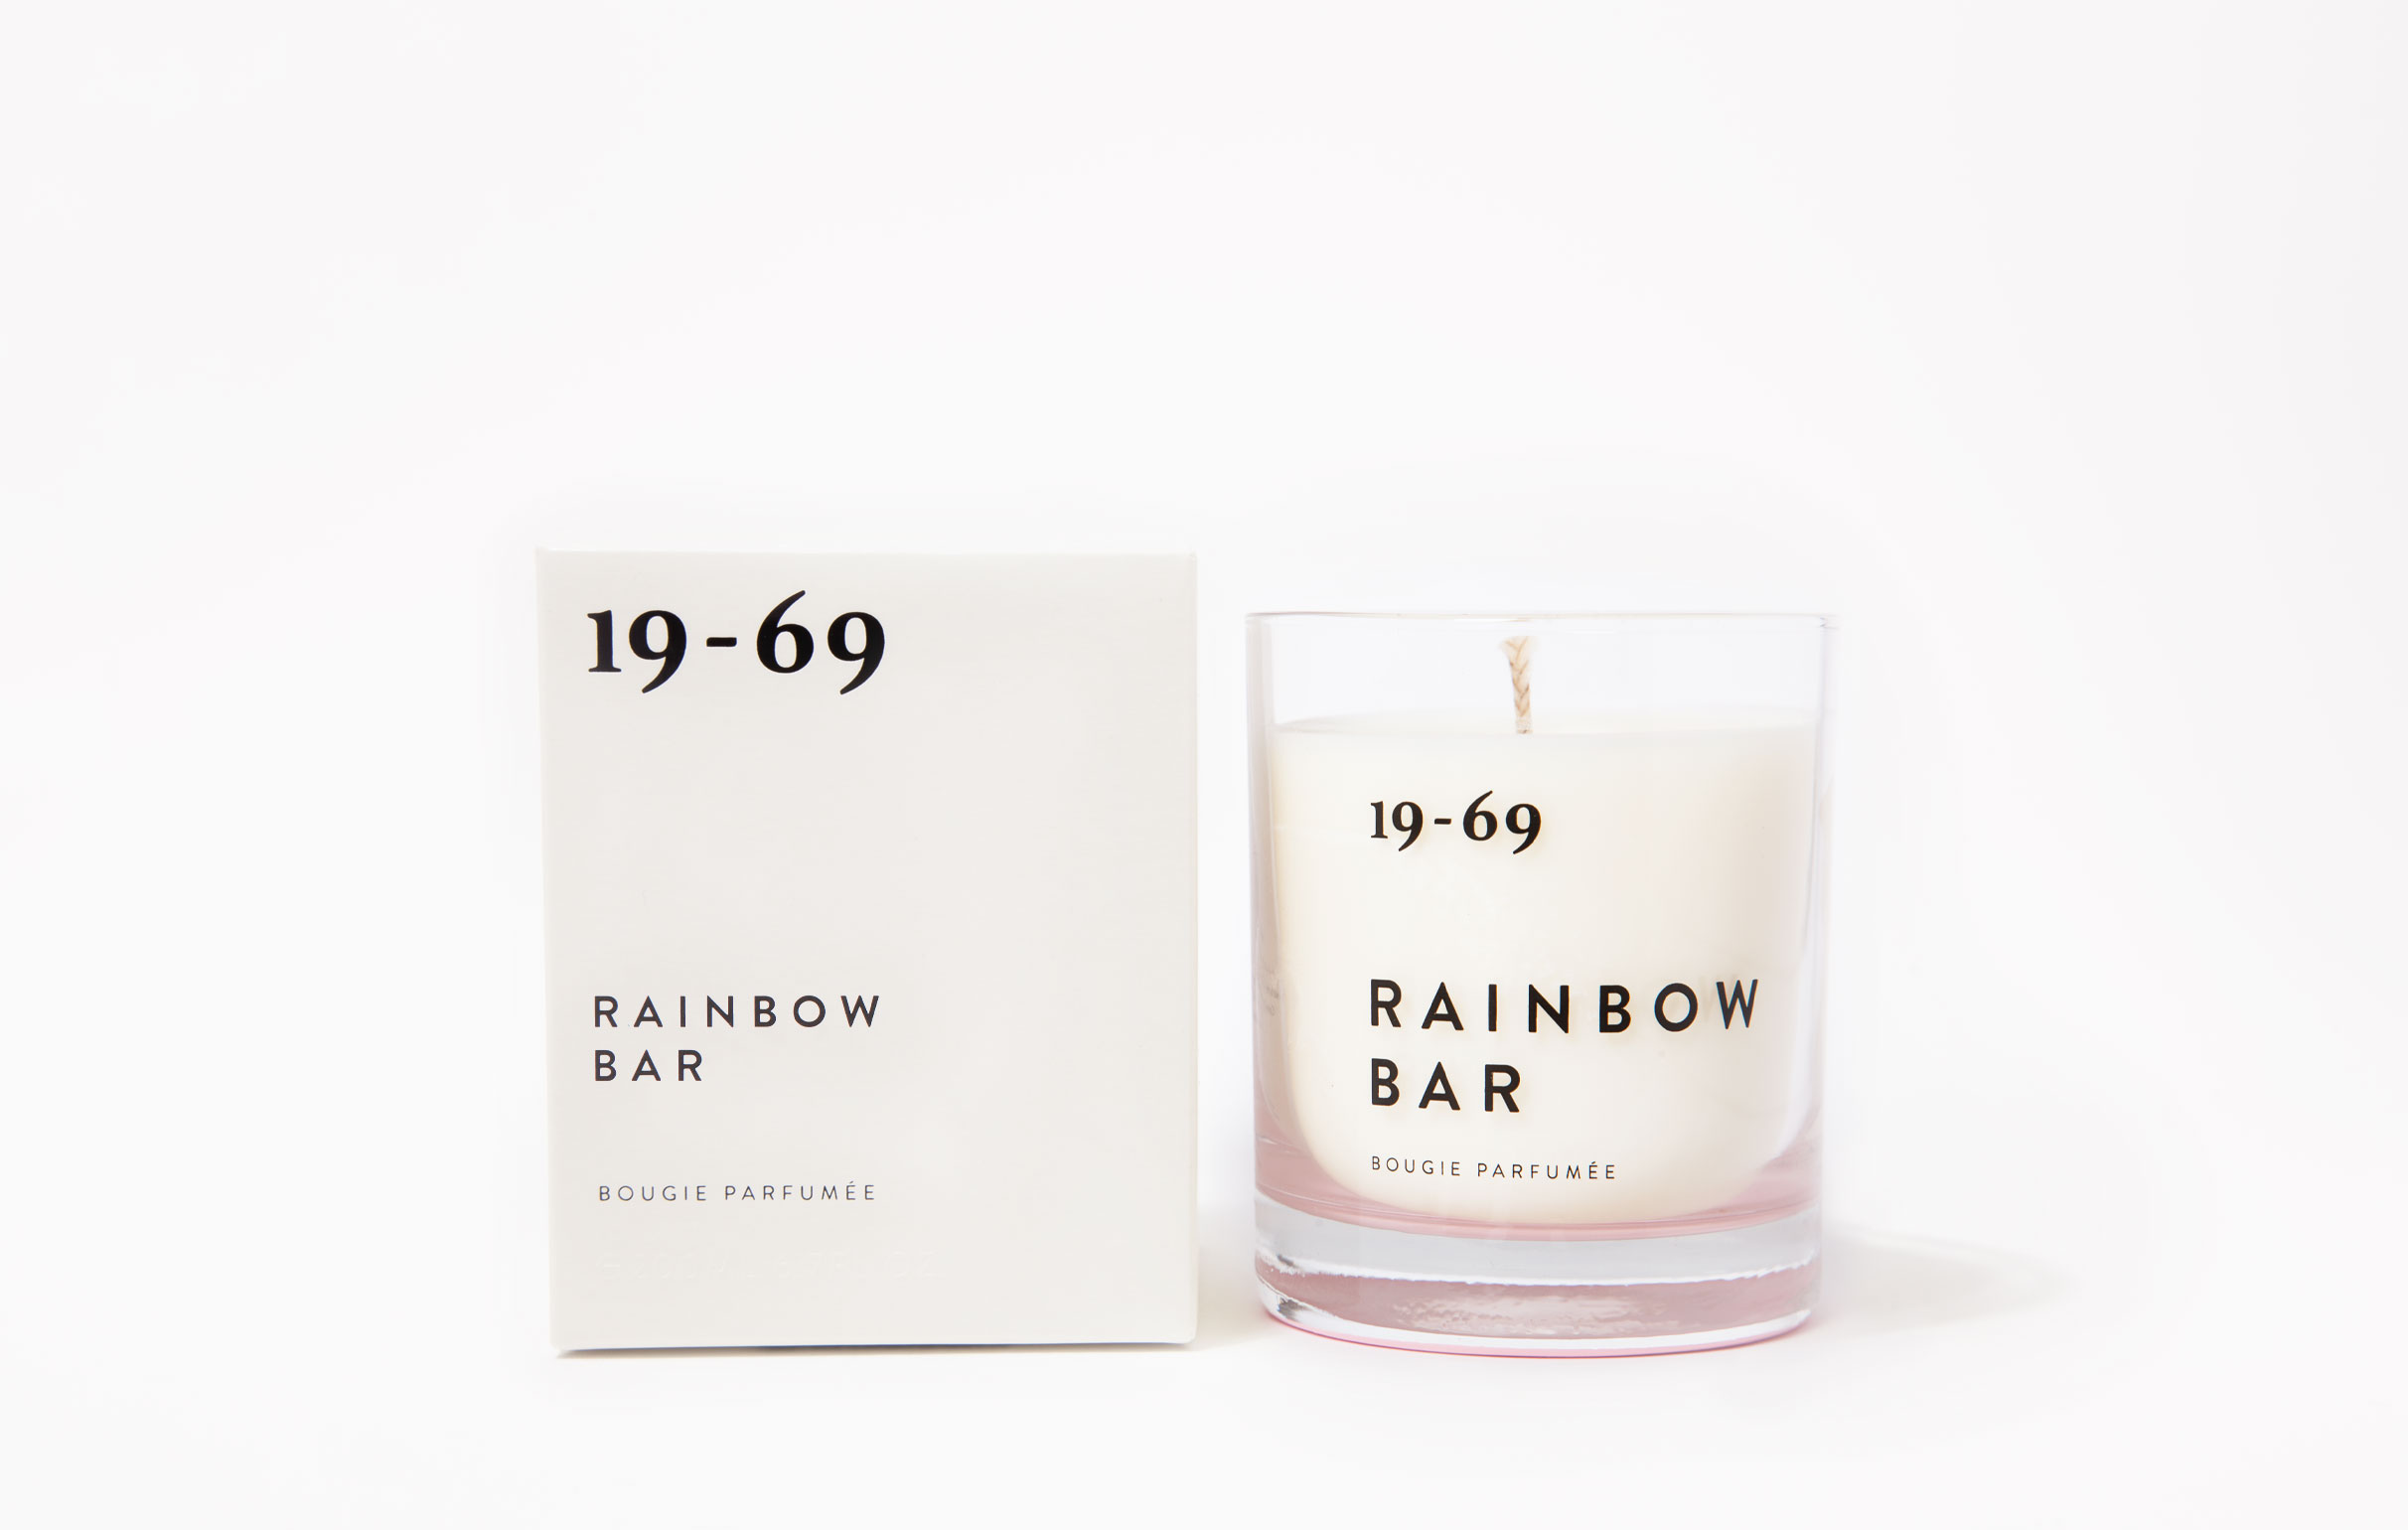 19-69 Rainbow Bar Bougie Parfumée 200ml